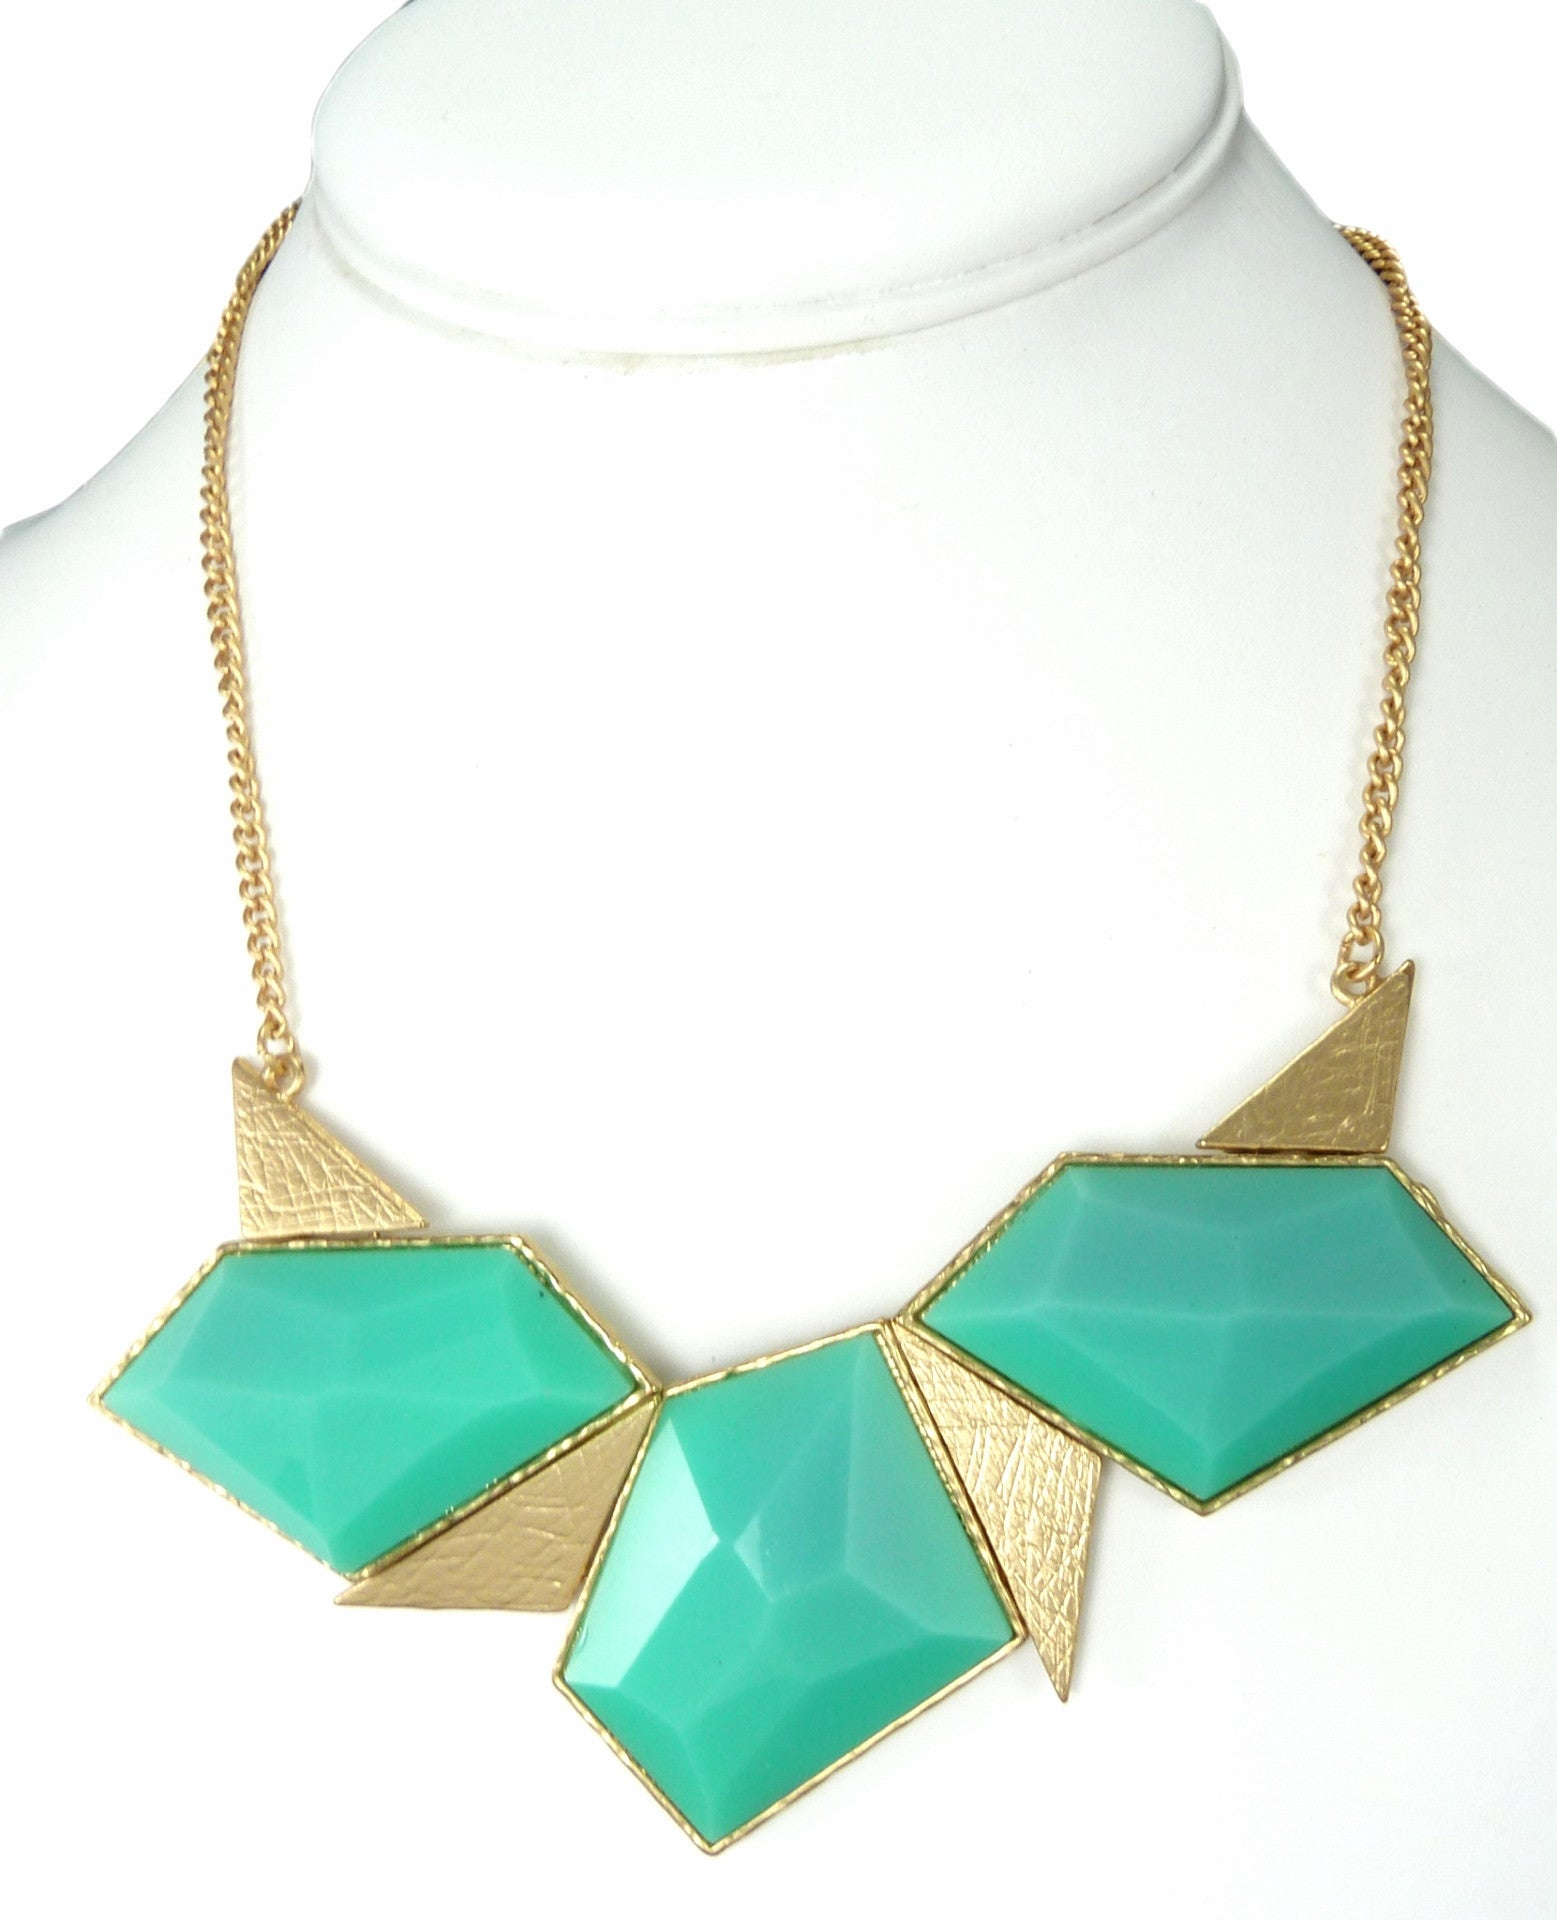 Green Art Deco Triangle Necklace from Vanett $15